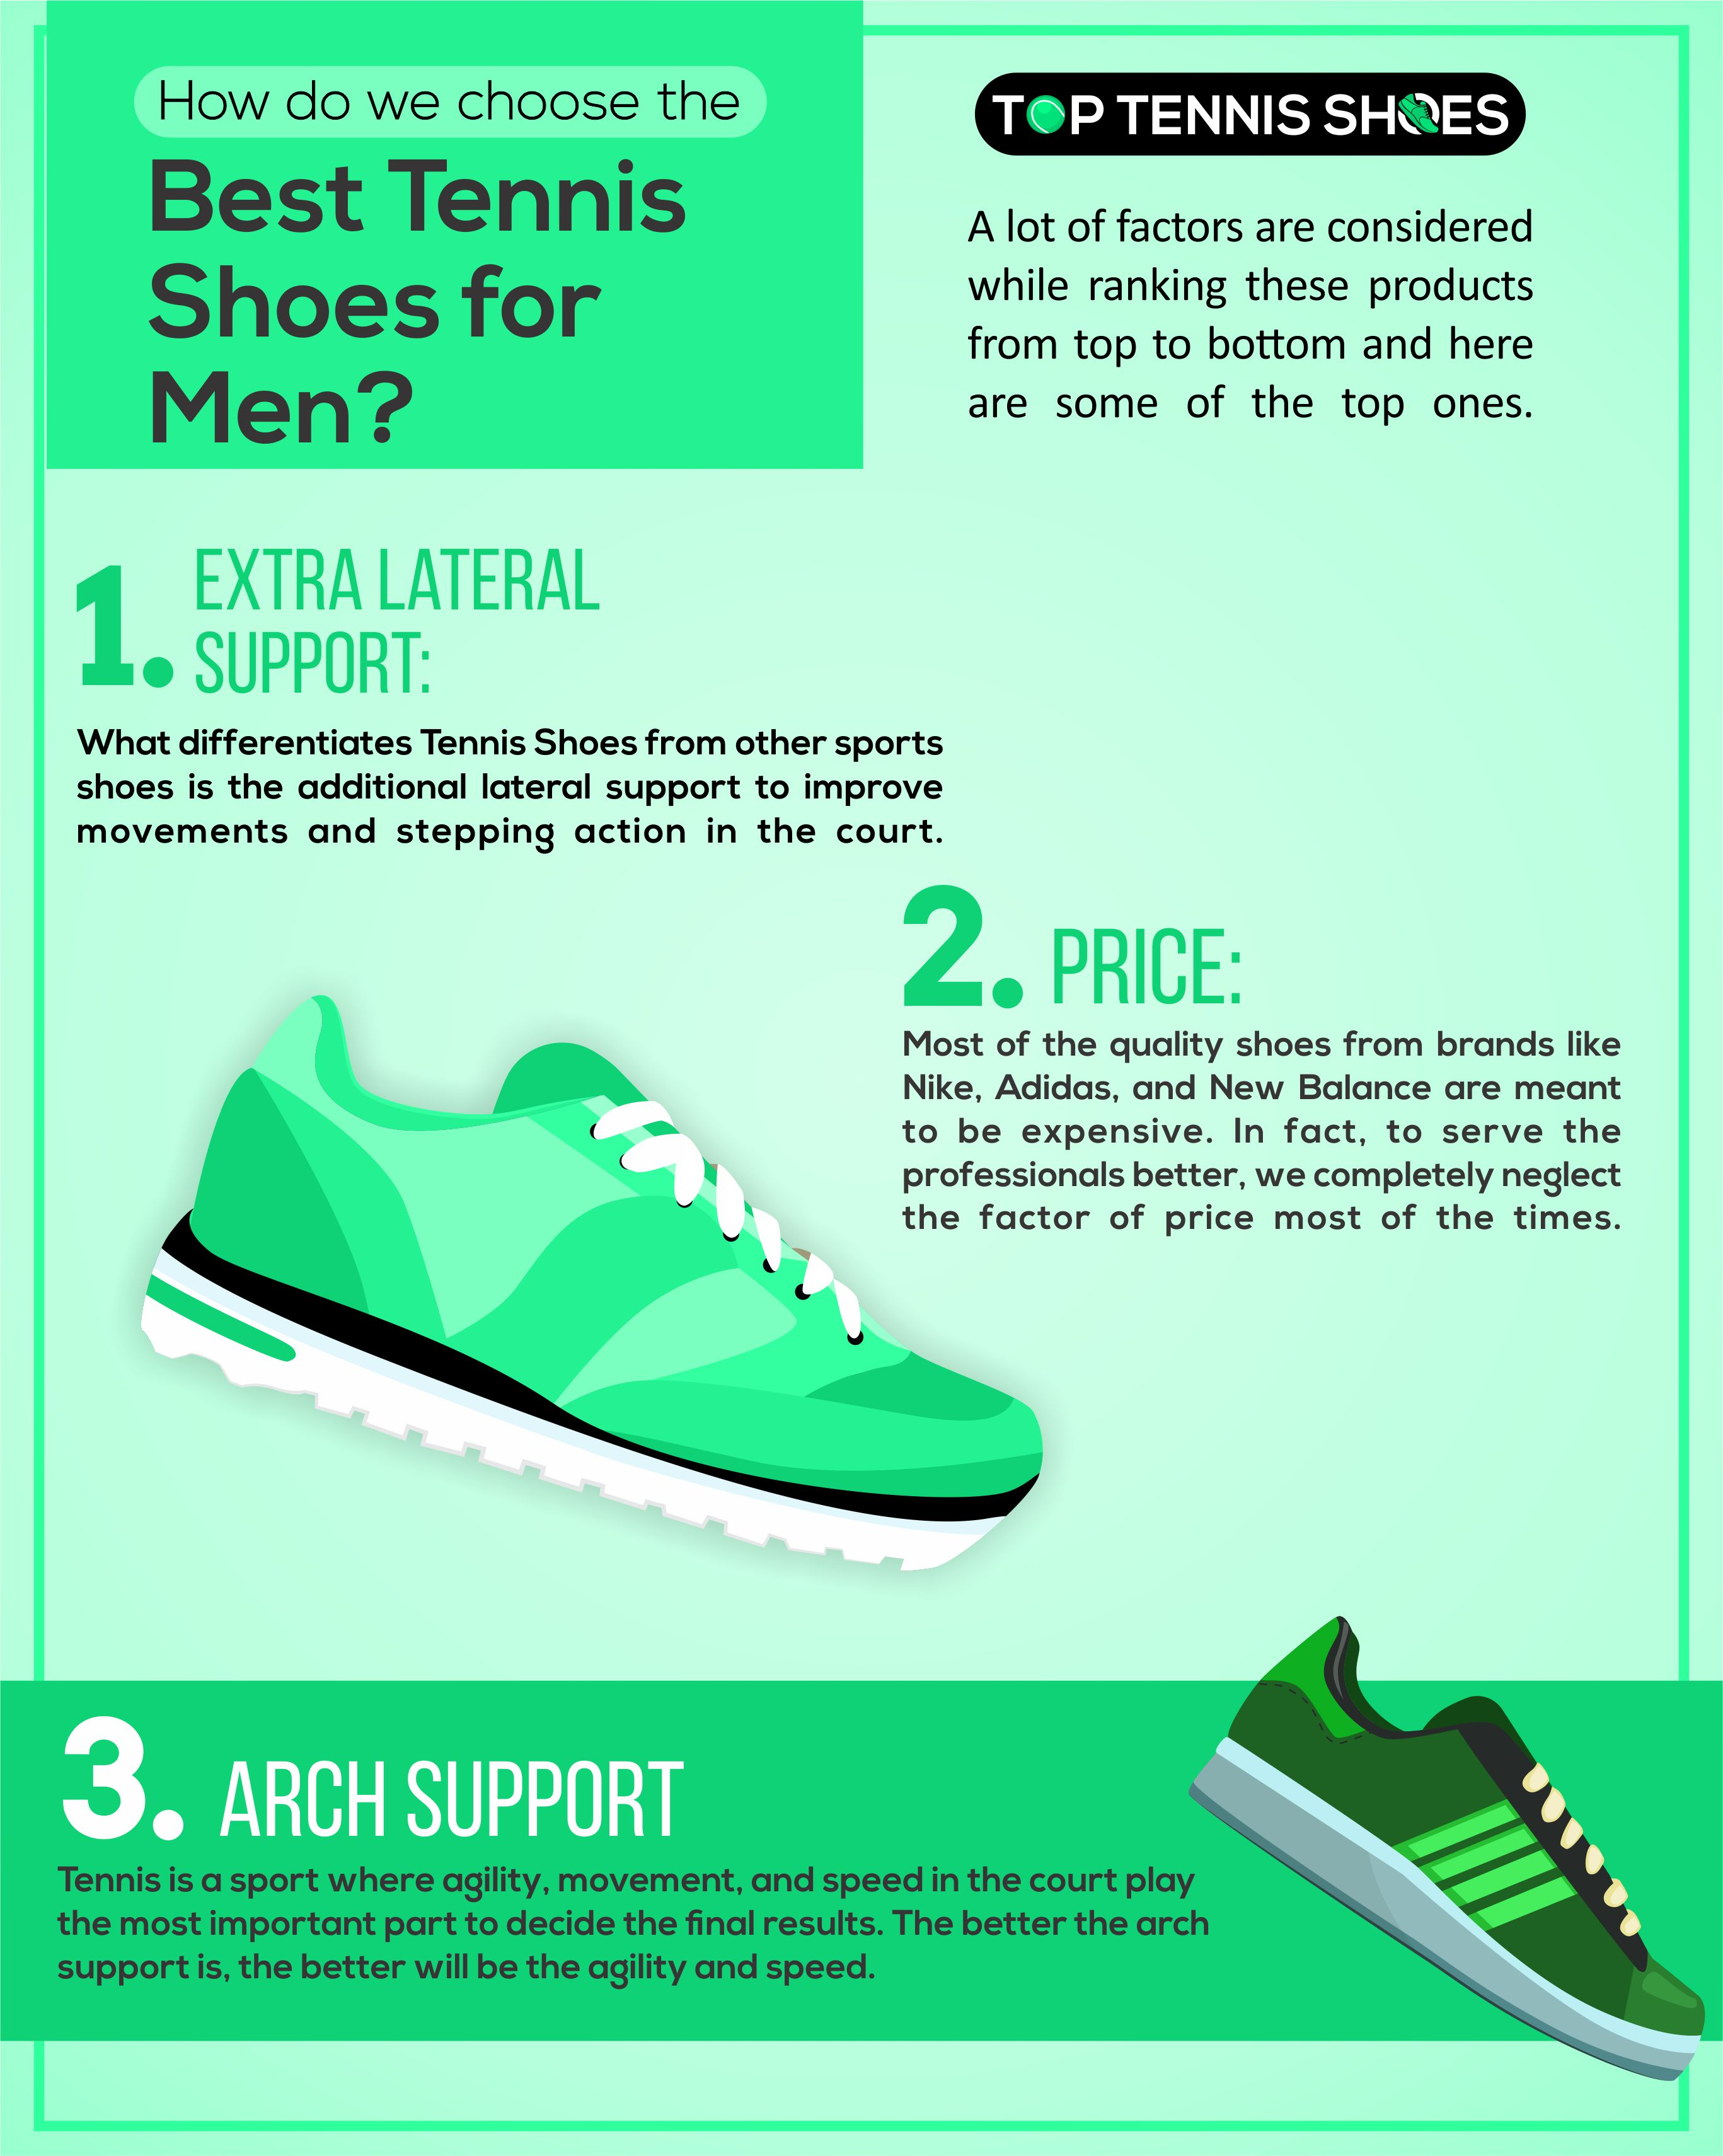 How do we choose the best tennis shoes for men